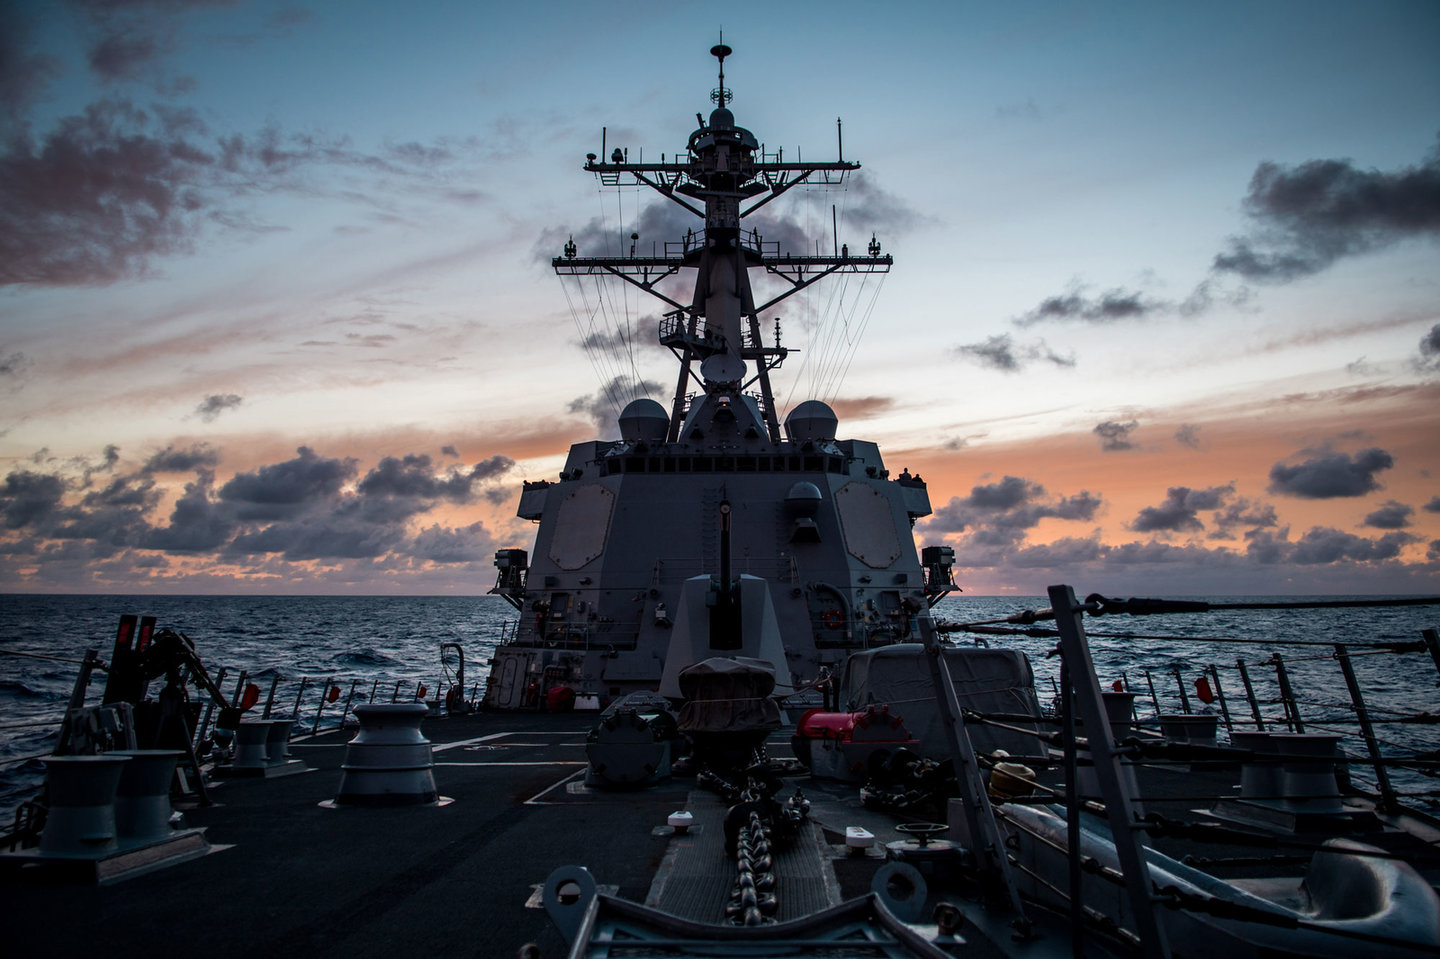 The US Navy is testing laser weapons on the destroyer USS Dewey